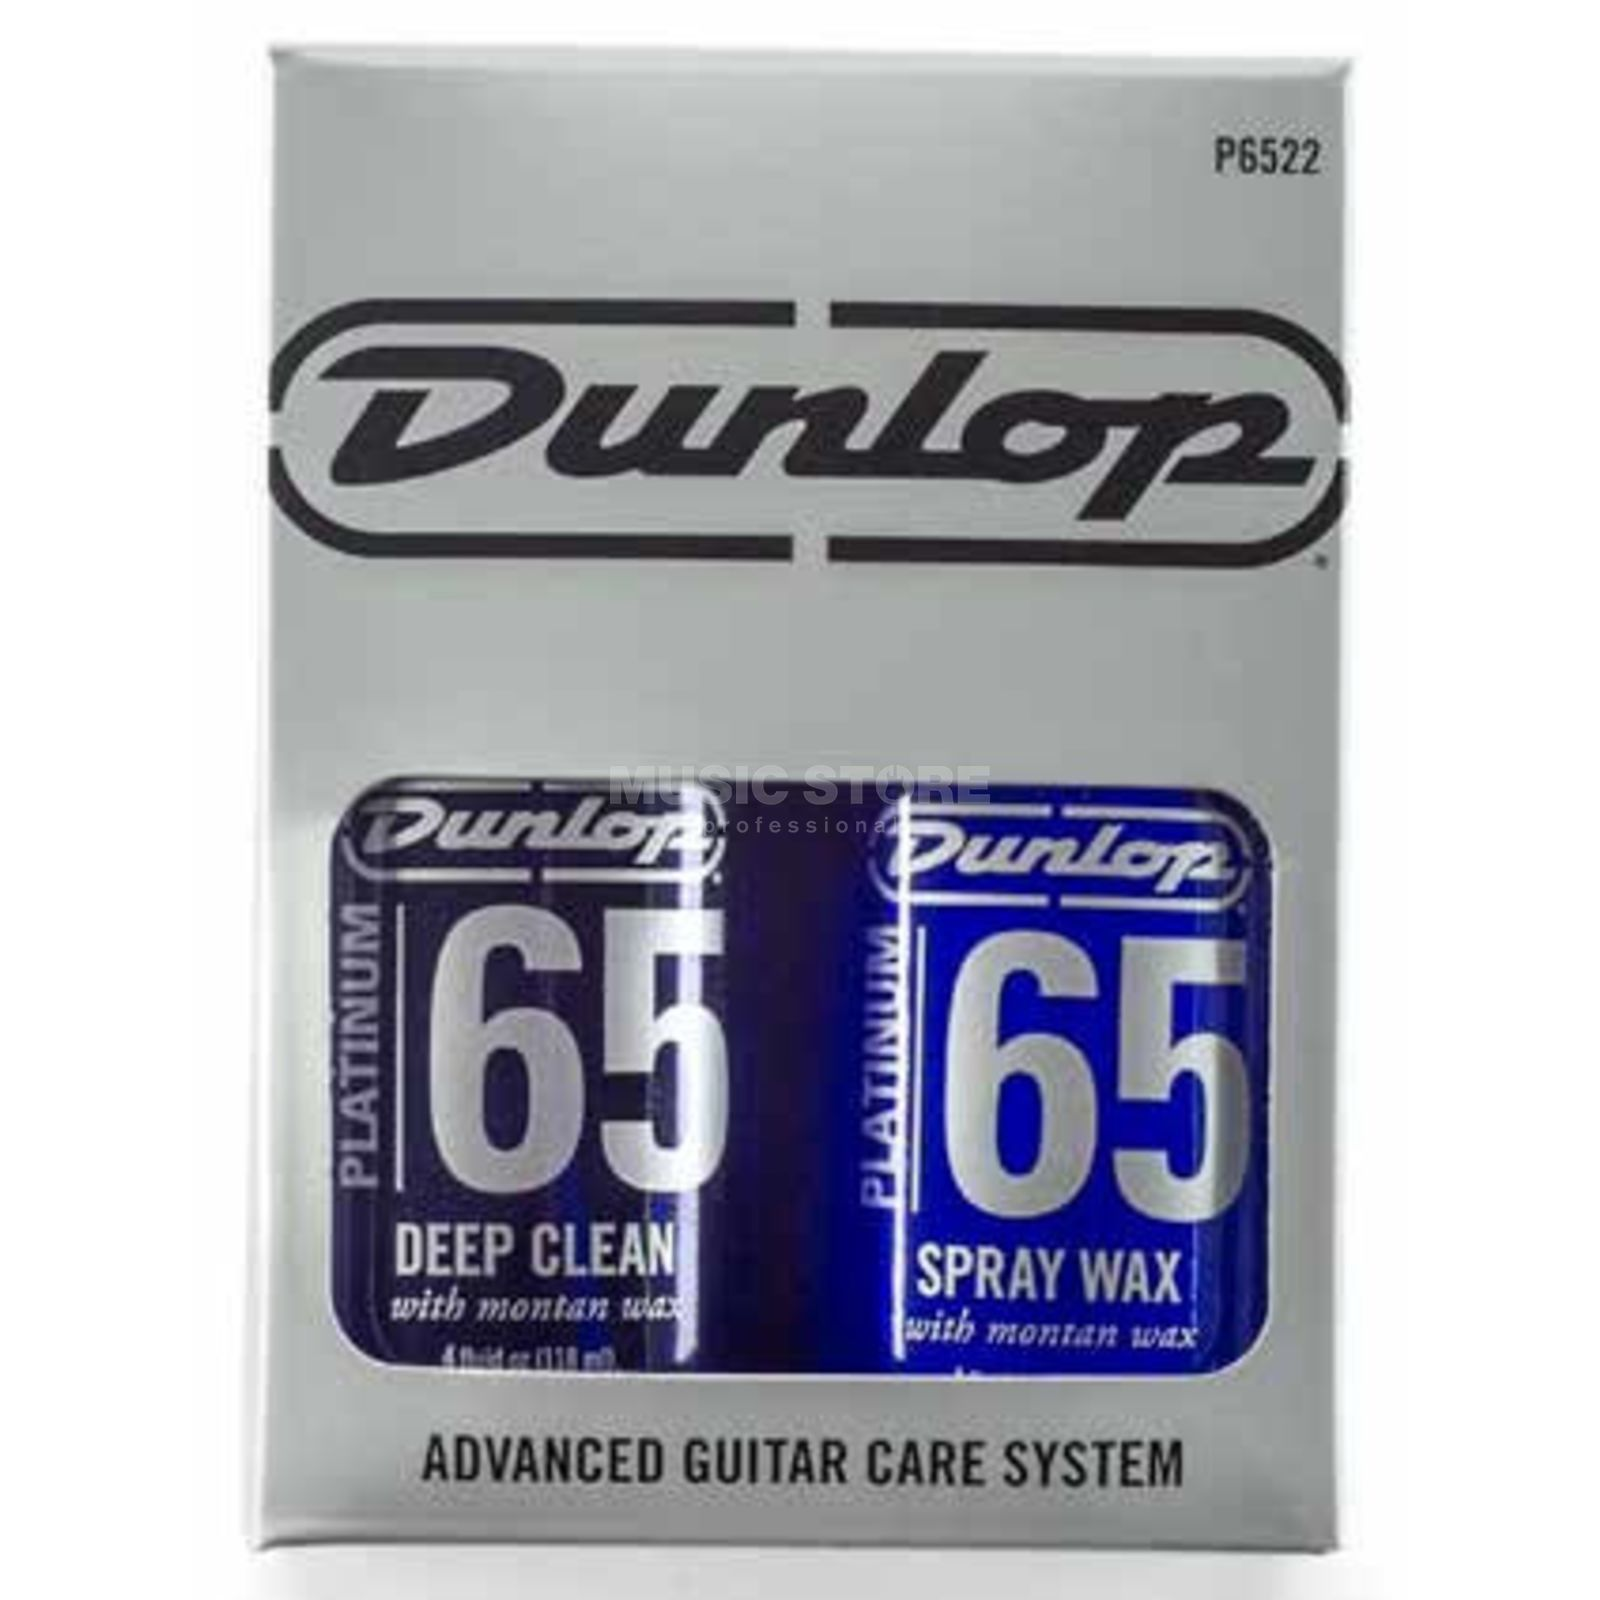 Dunlop Platinum 65 Advanced Guitar Care System Deep Clean, Spray Wax, 2 Tücher, P65 22 Изображение товара